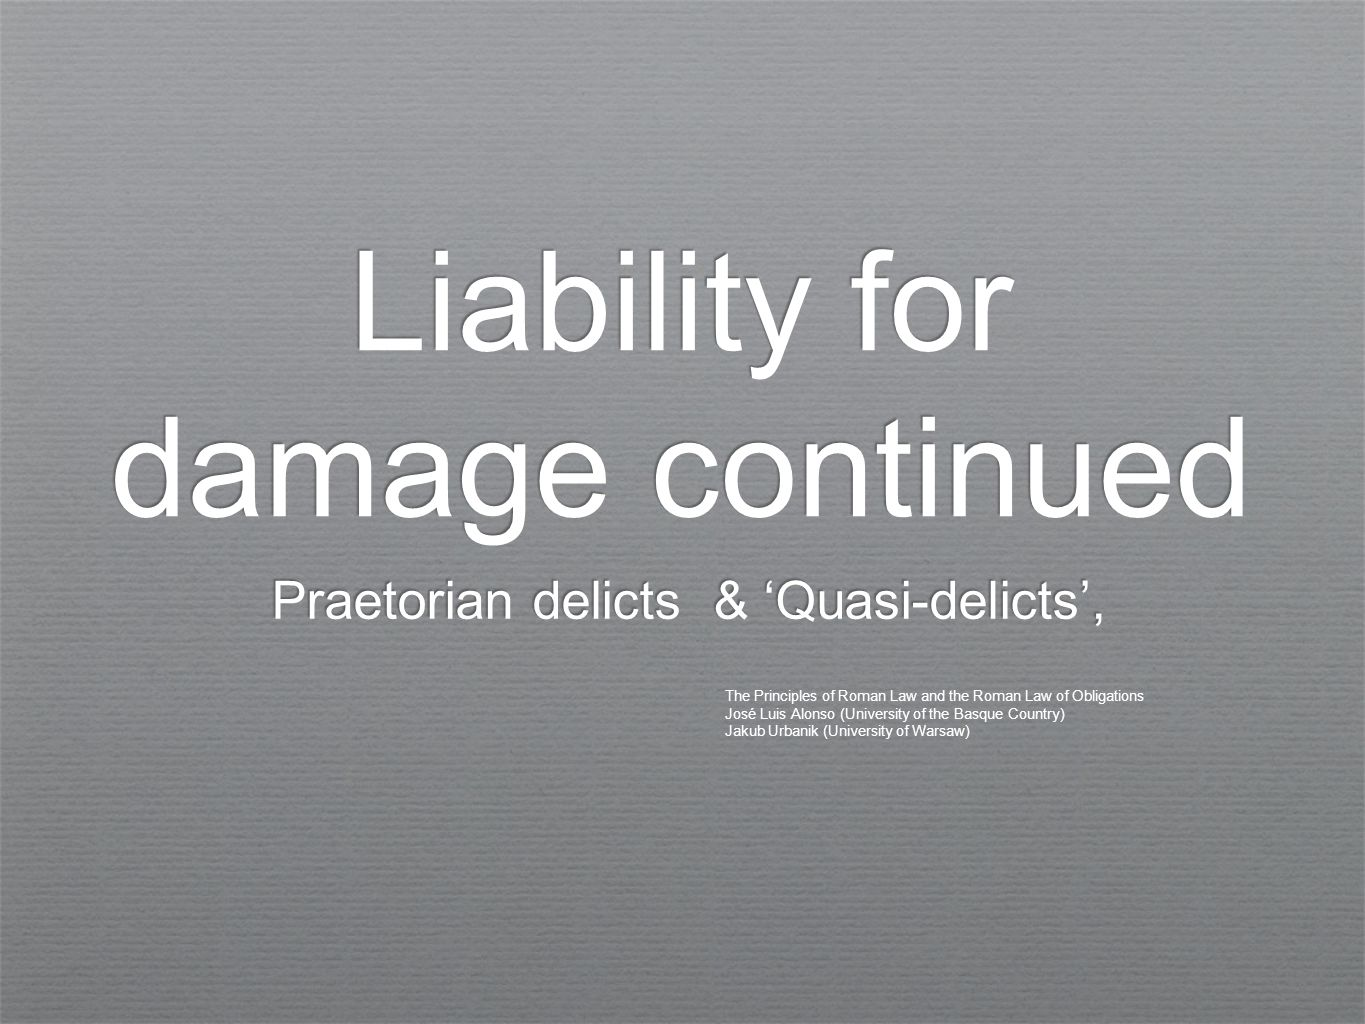 Liability for damage continued Praetorian delicts & 'Quasi-delicts', The Principles of Roman Law and the Roman Law of Obligations José Luis Alonso (University of the Basque Country) Jakub Urbanik (University of Warsaw)